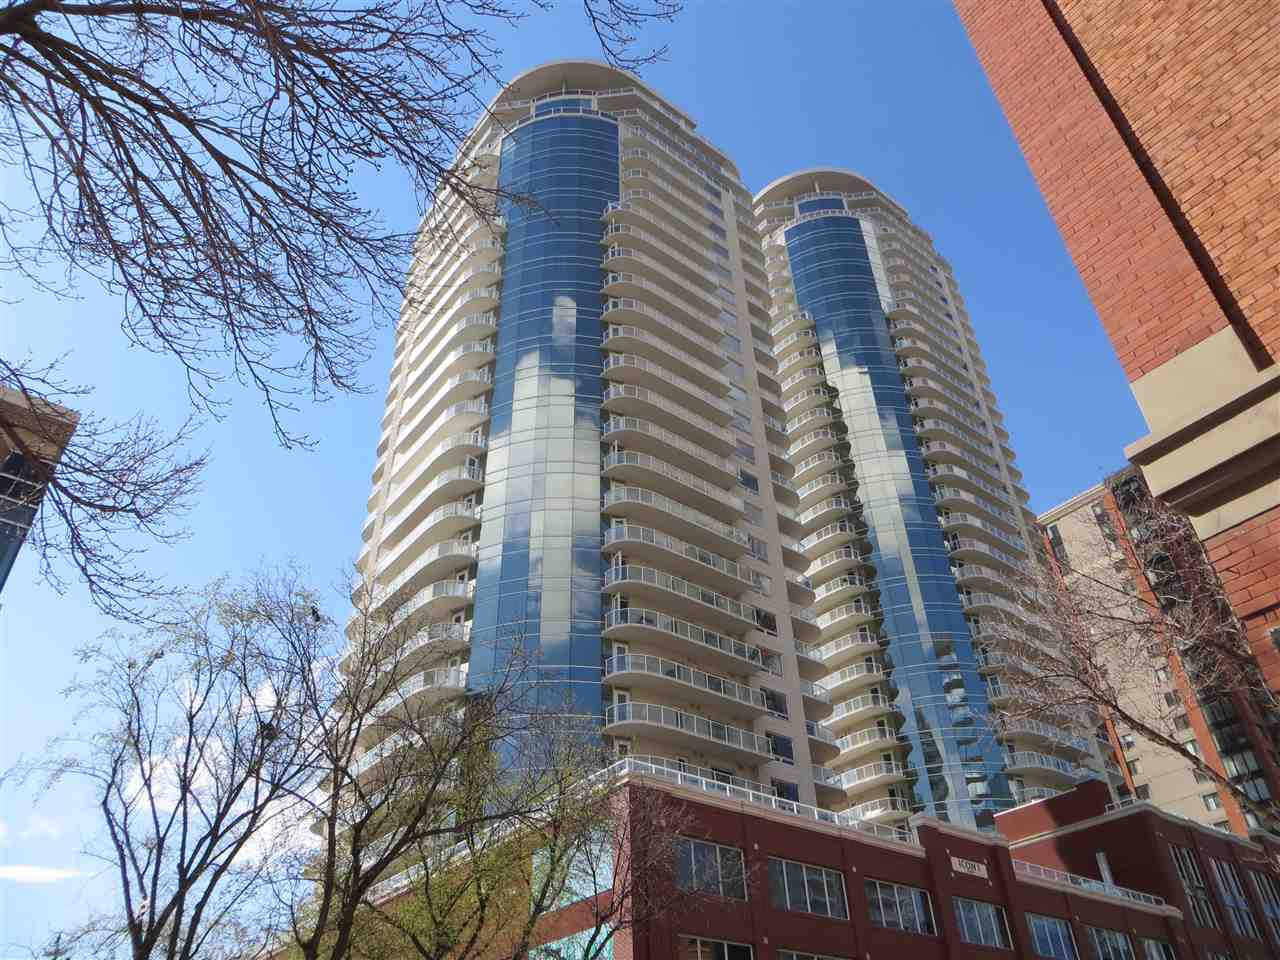 Hard to find condos this size in this price range!  Over 1200 sq ft 24th floor unit with 2 balconies with sweeping north, east and south views that overlook Rogers Place, the river and Re/Max Field. Sweeping east facing downtown skyline views from your living room and kitchen.  This upgraded unit includes: 9 foot ceilings, hardwood and tile flooring, A/C, stainless steel appliances, granite counters in the kitchen and bathrooms, tandem underground parking stall, master bedroom with walk in closet and built in shelving, and a private balcony off master perfect for morning coffee.  2nd bedroom is a good size as well.